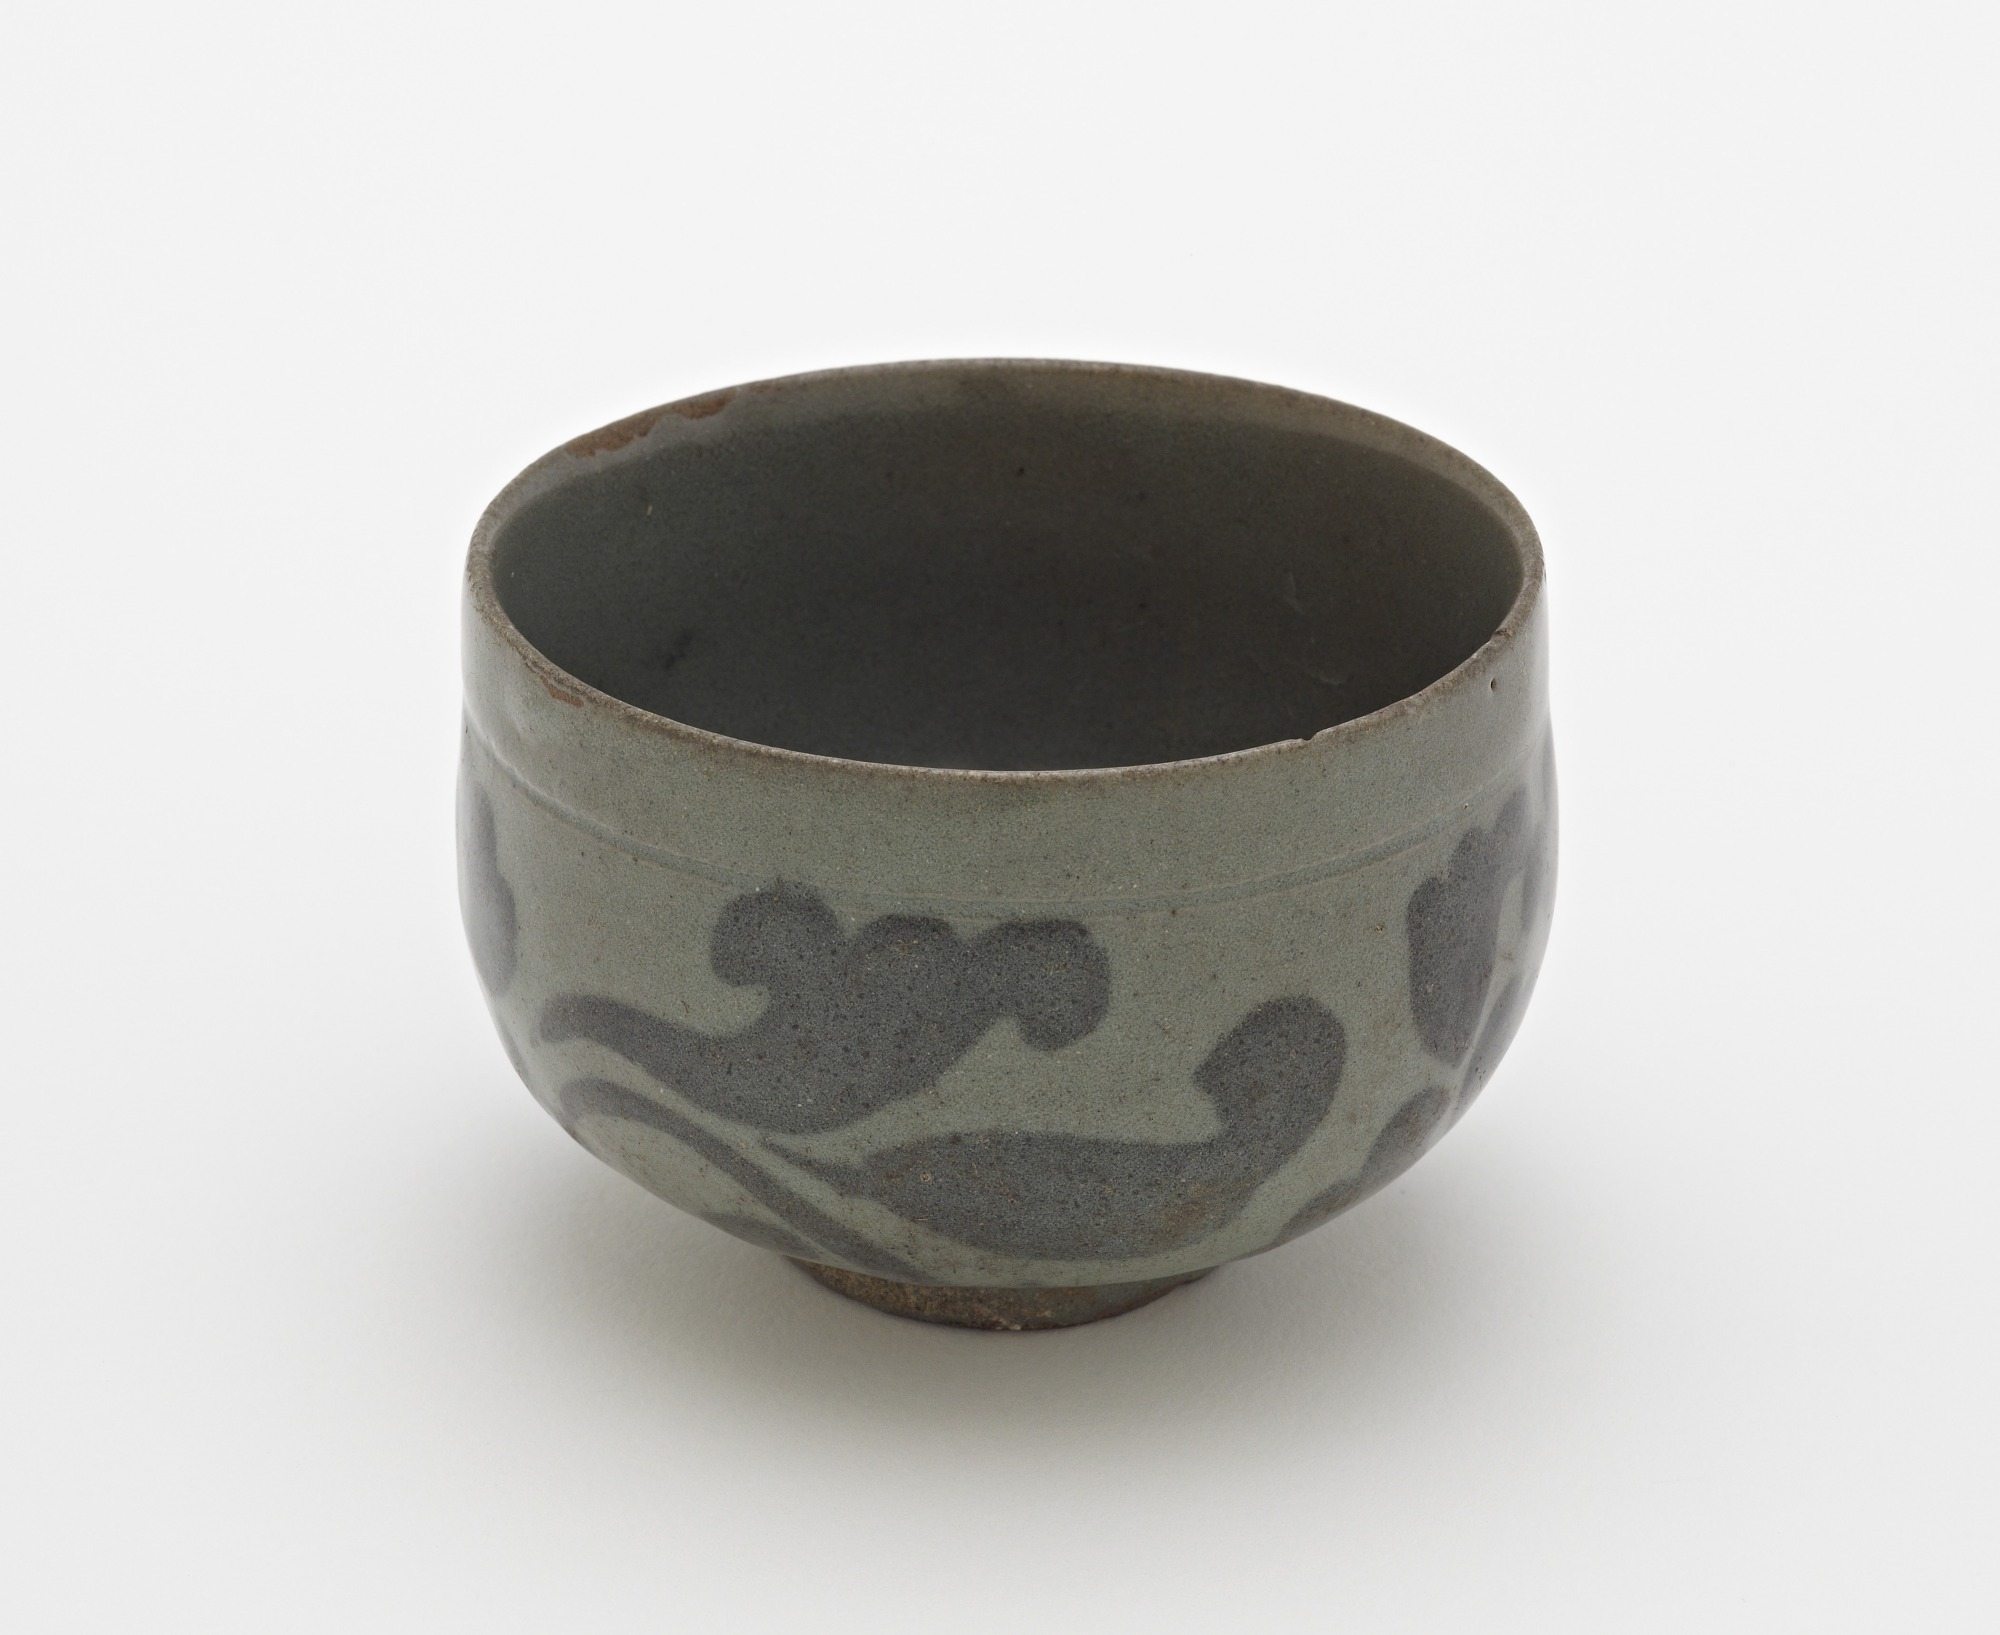 3/4 profile: Cup with design of peony blossoms